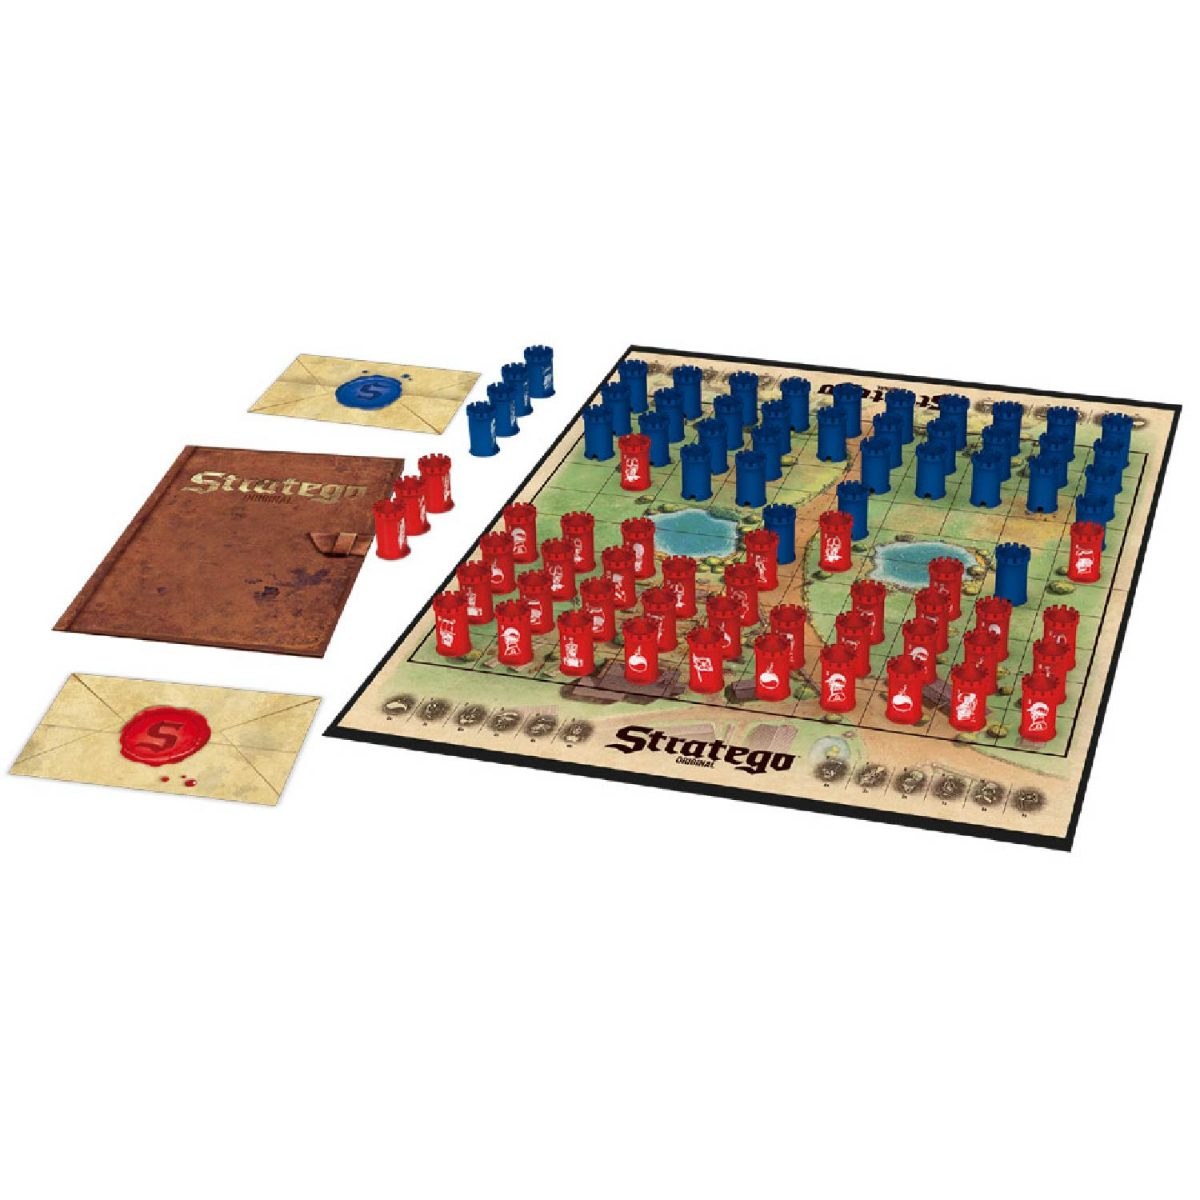 Stratego bordspel